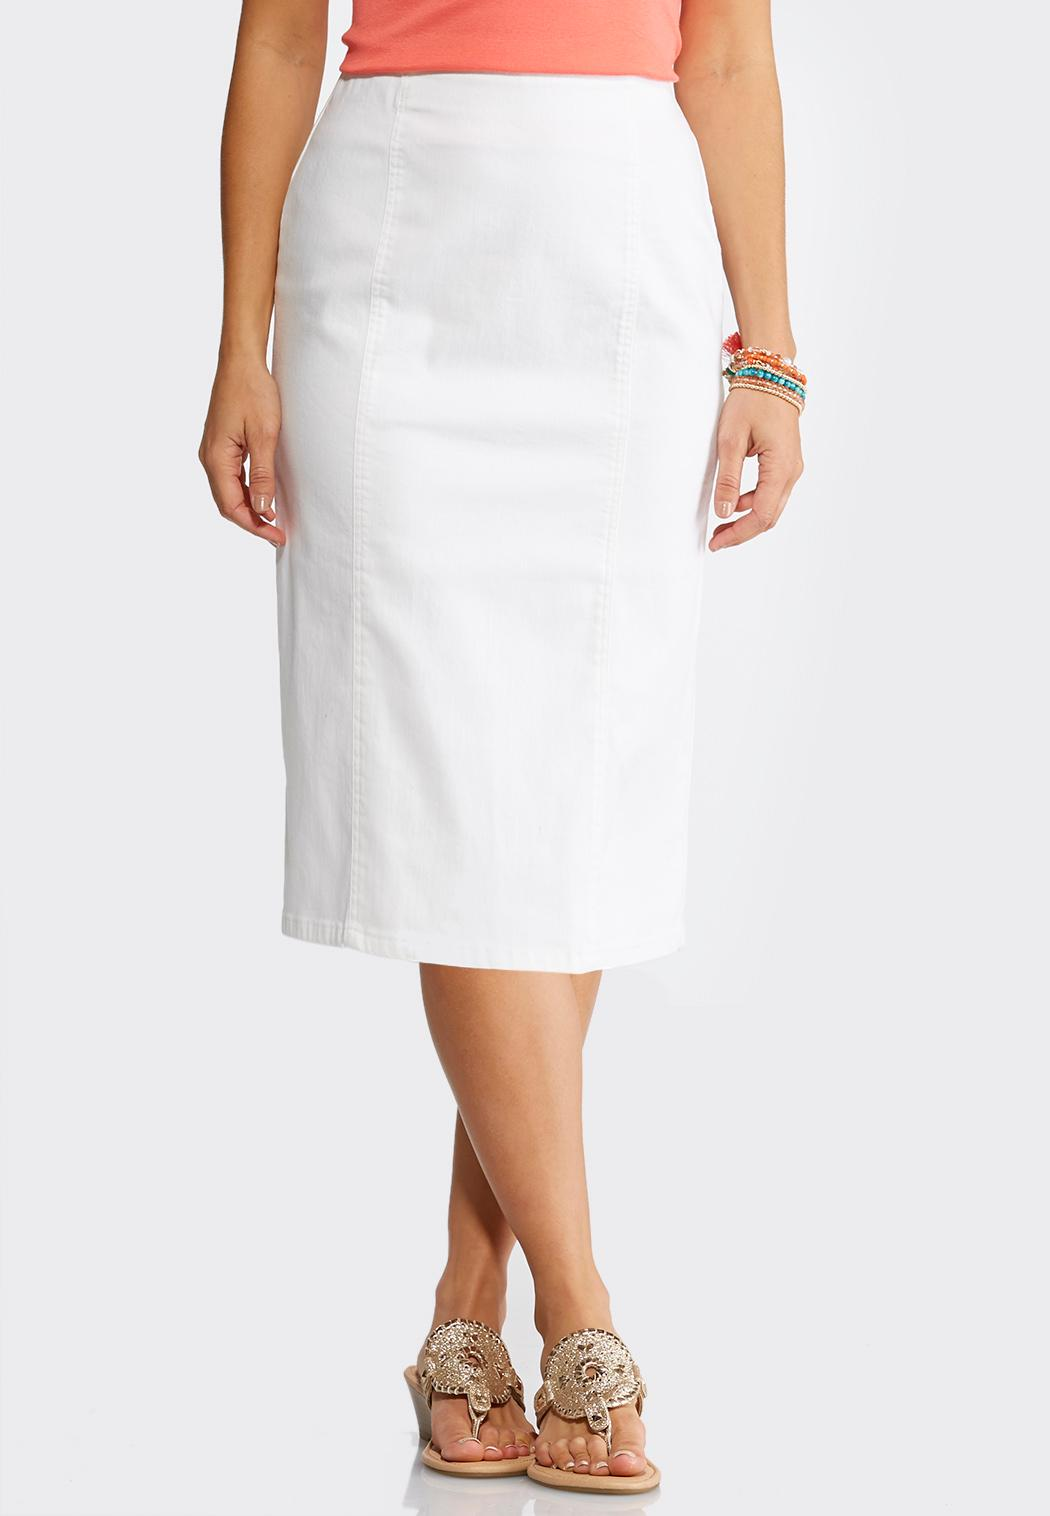 Plus Size White PullOn Pencil Skirt Skirts Cato Fashions - What is invoice payment plus size online stores